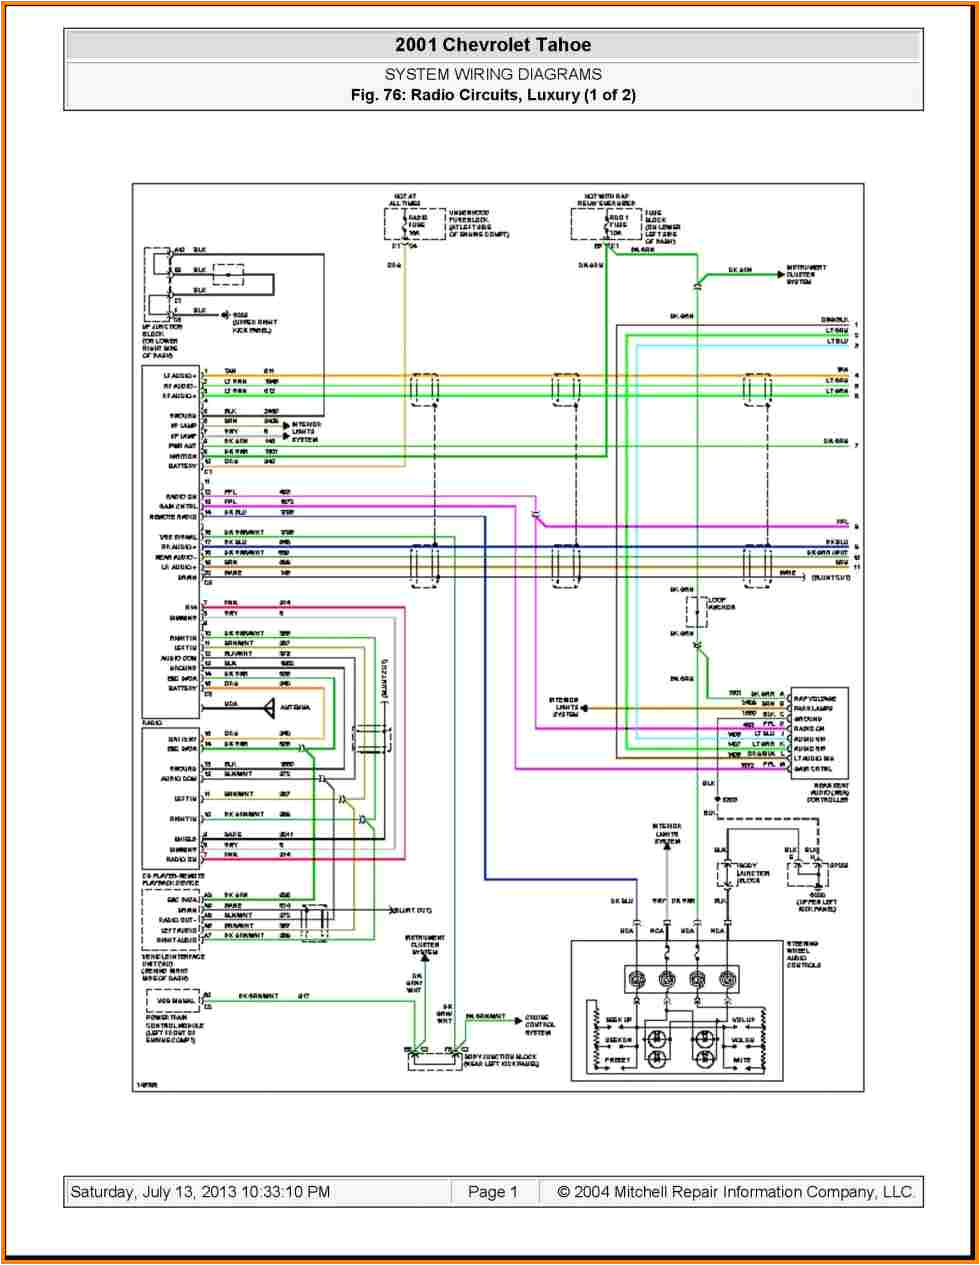 Wiring Diagram for Defy Gemini Oven Wiring Diagram for Defy Gemini Oven Inspirational Wiring Diagram for